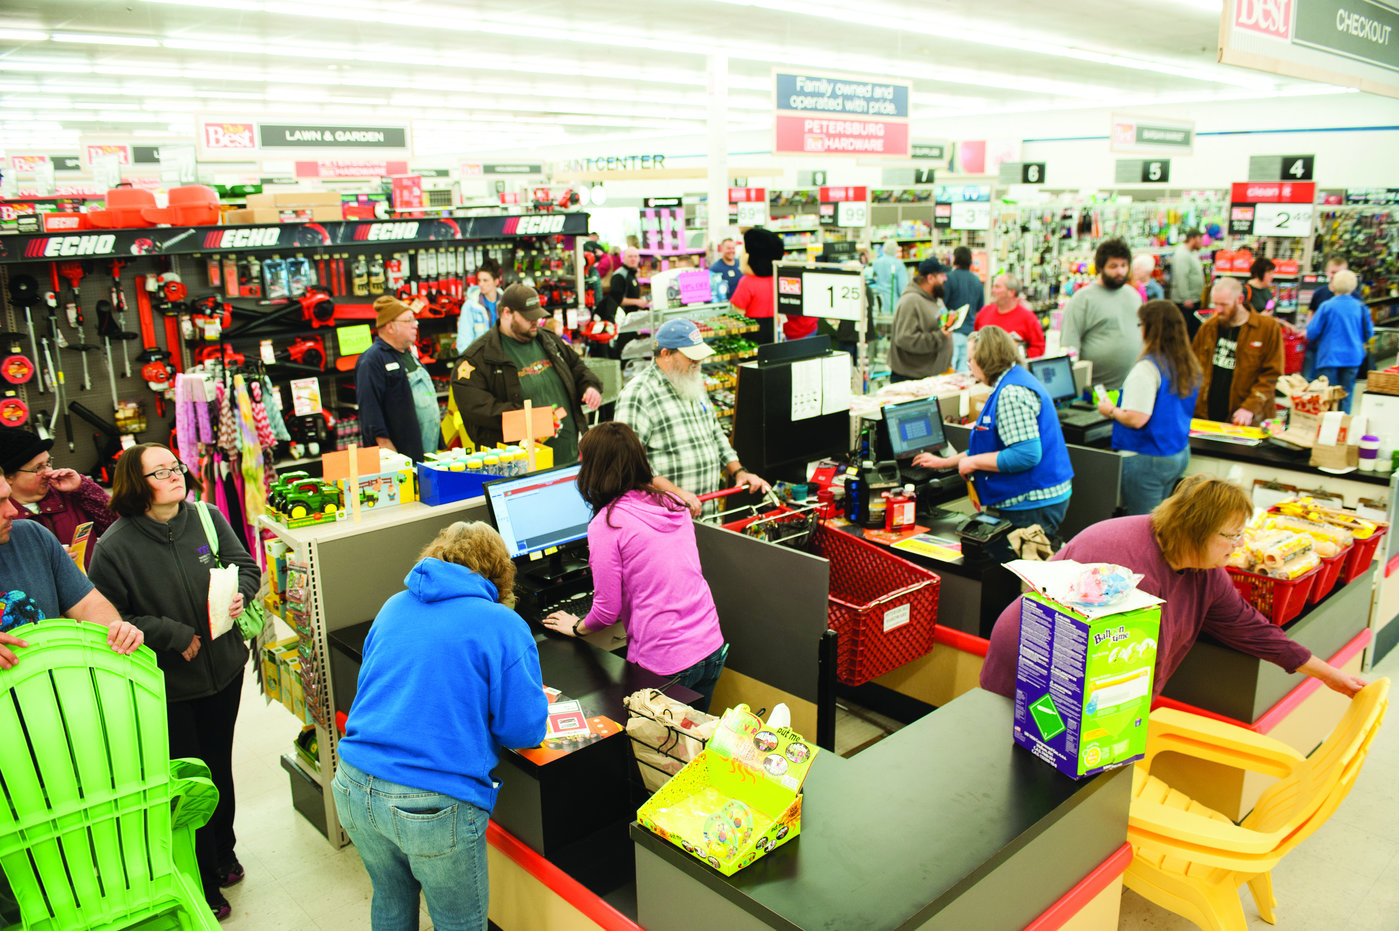 The store's grand opening in April 2016 attracted more than 2,000 people in a town of 2,400.